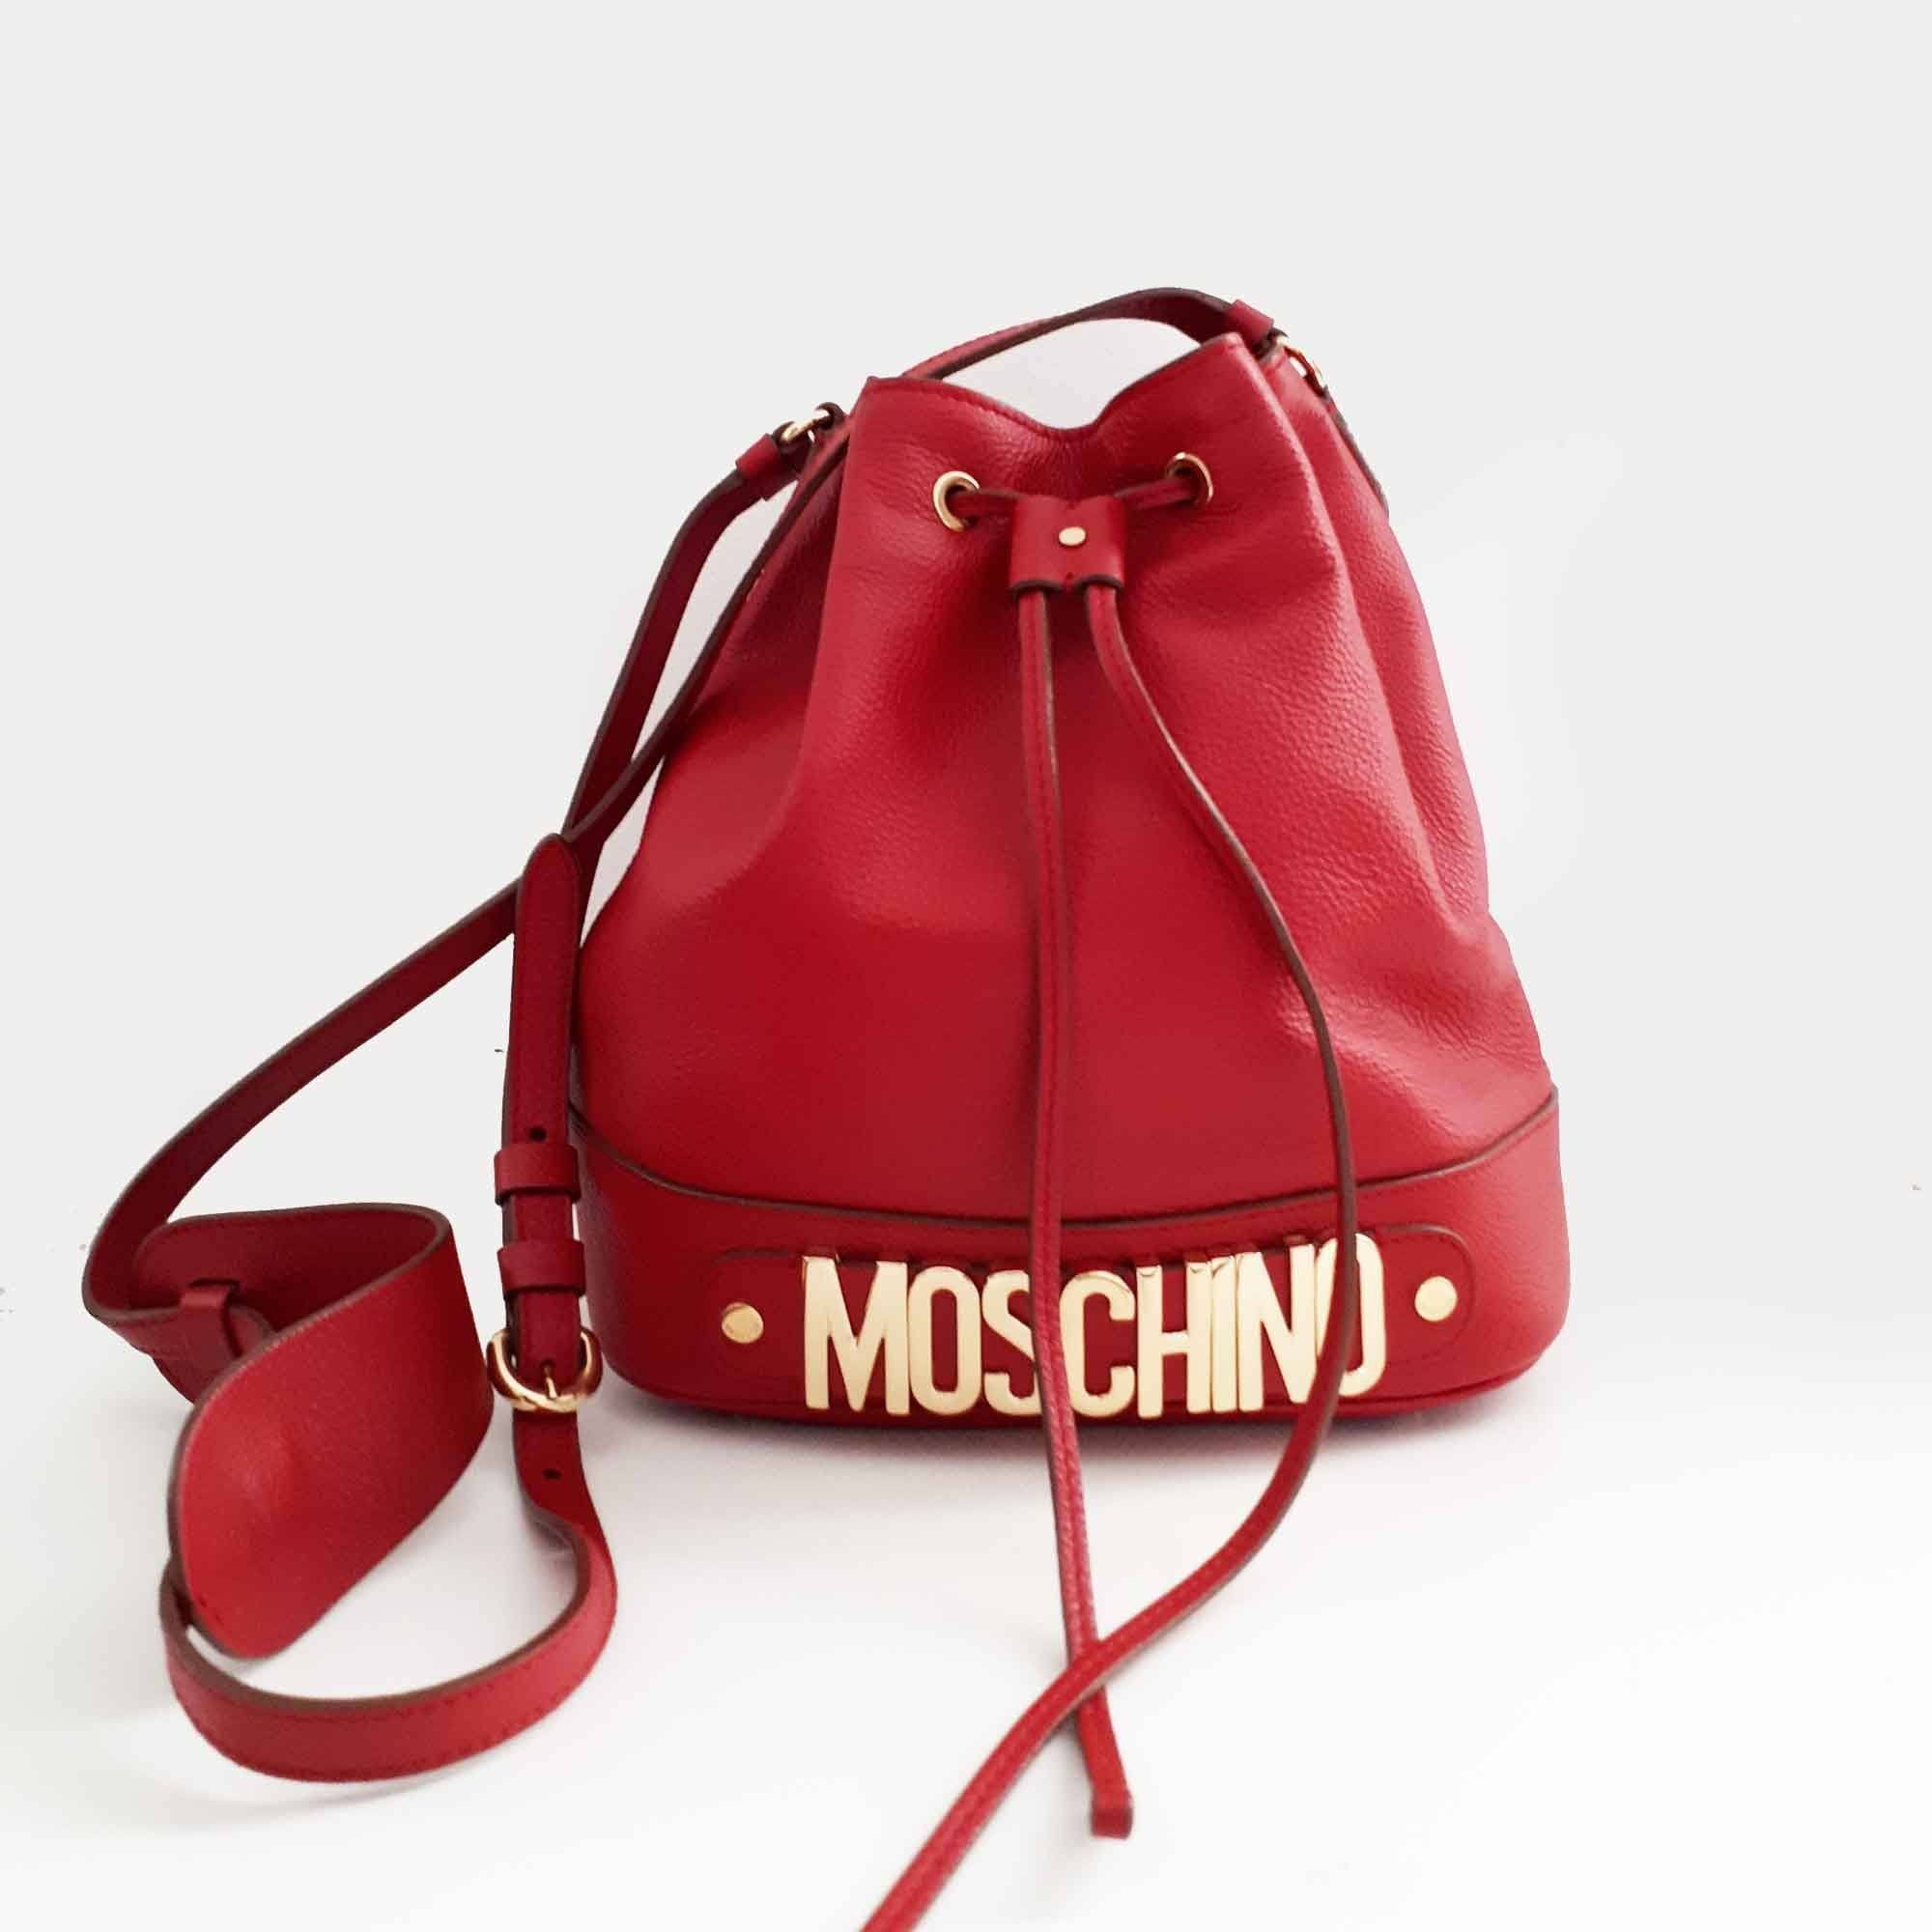 Moschino Red Bucket Bag